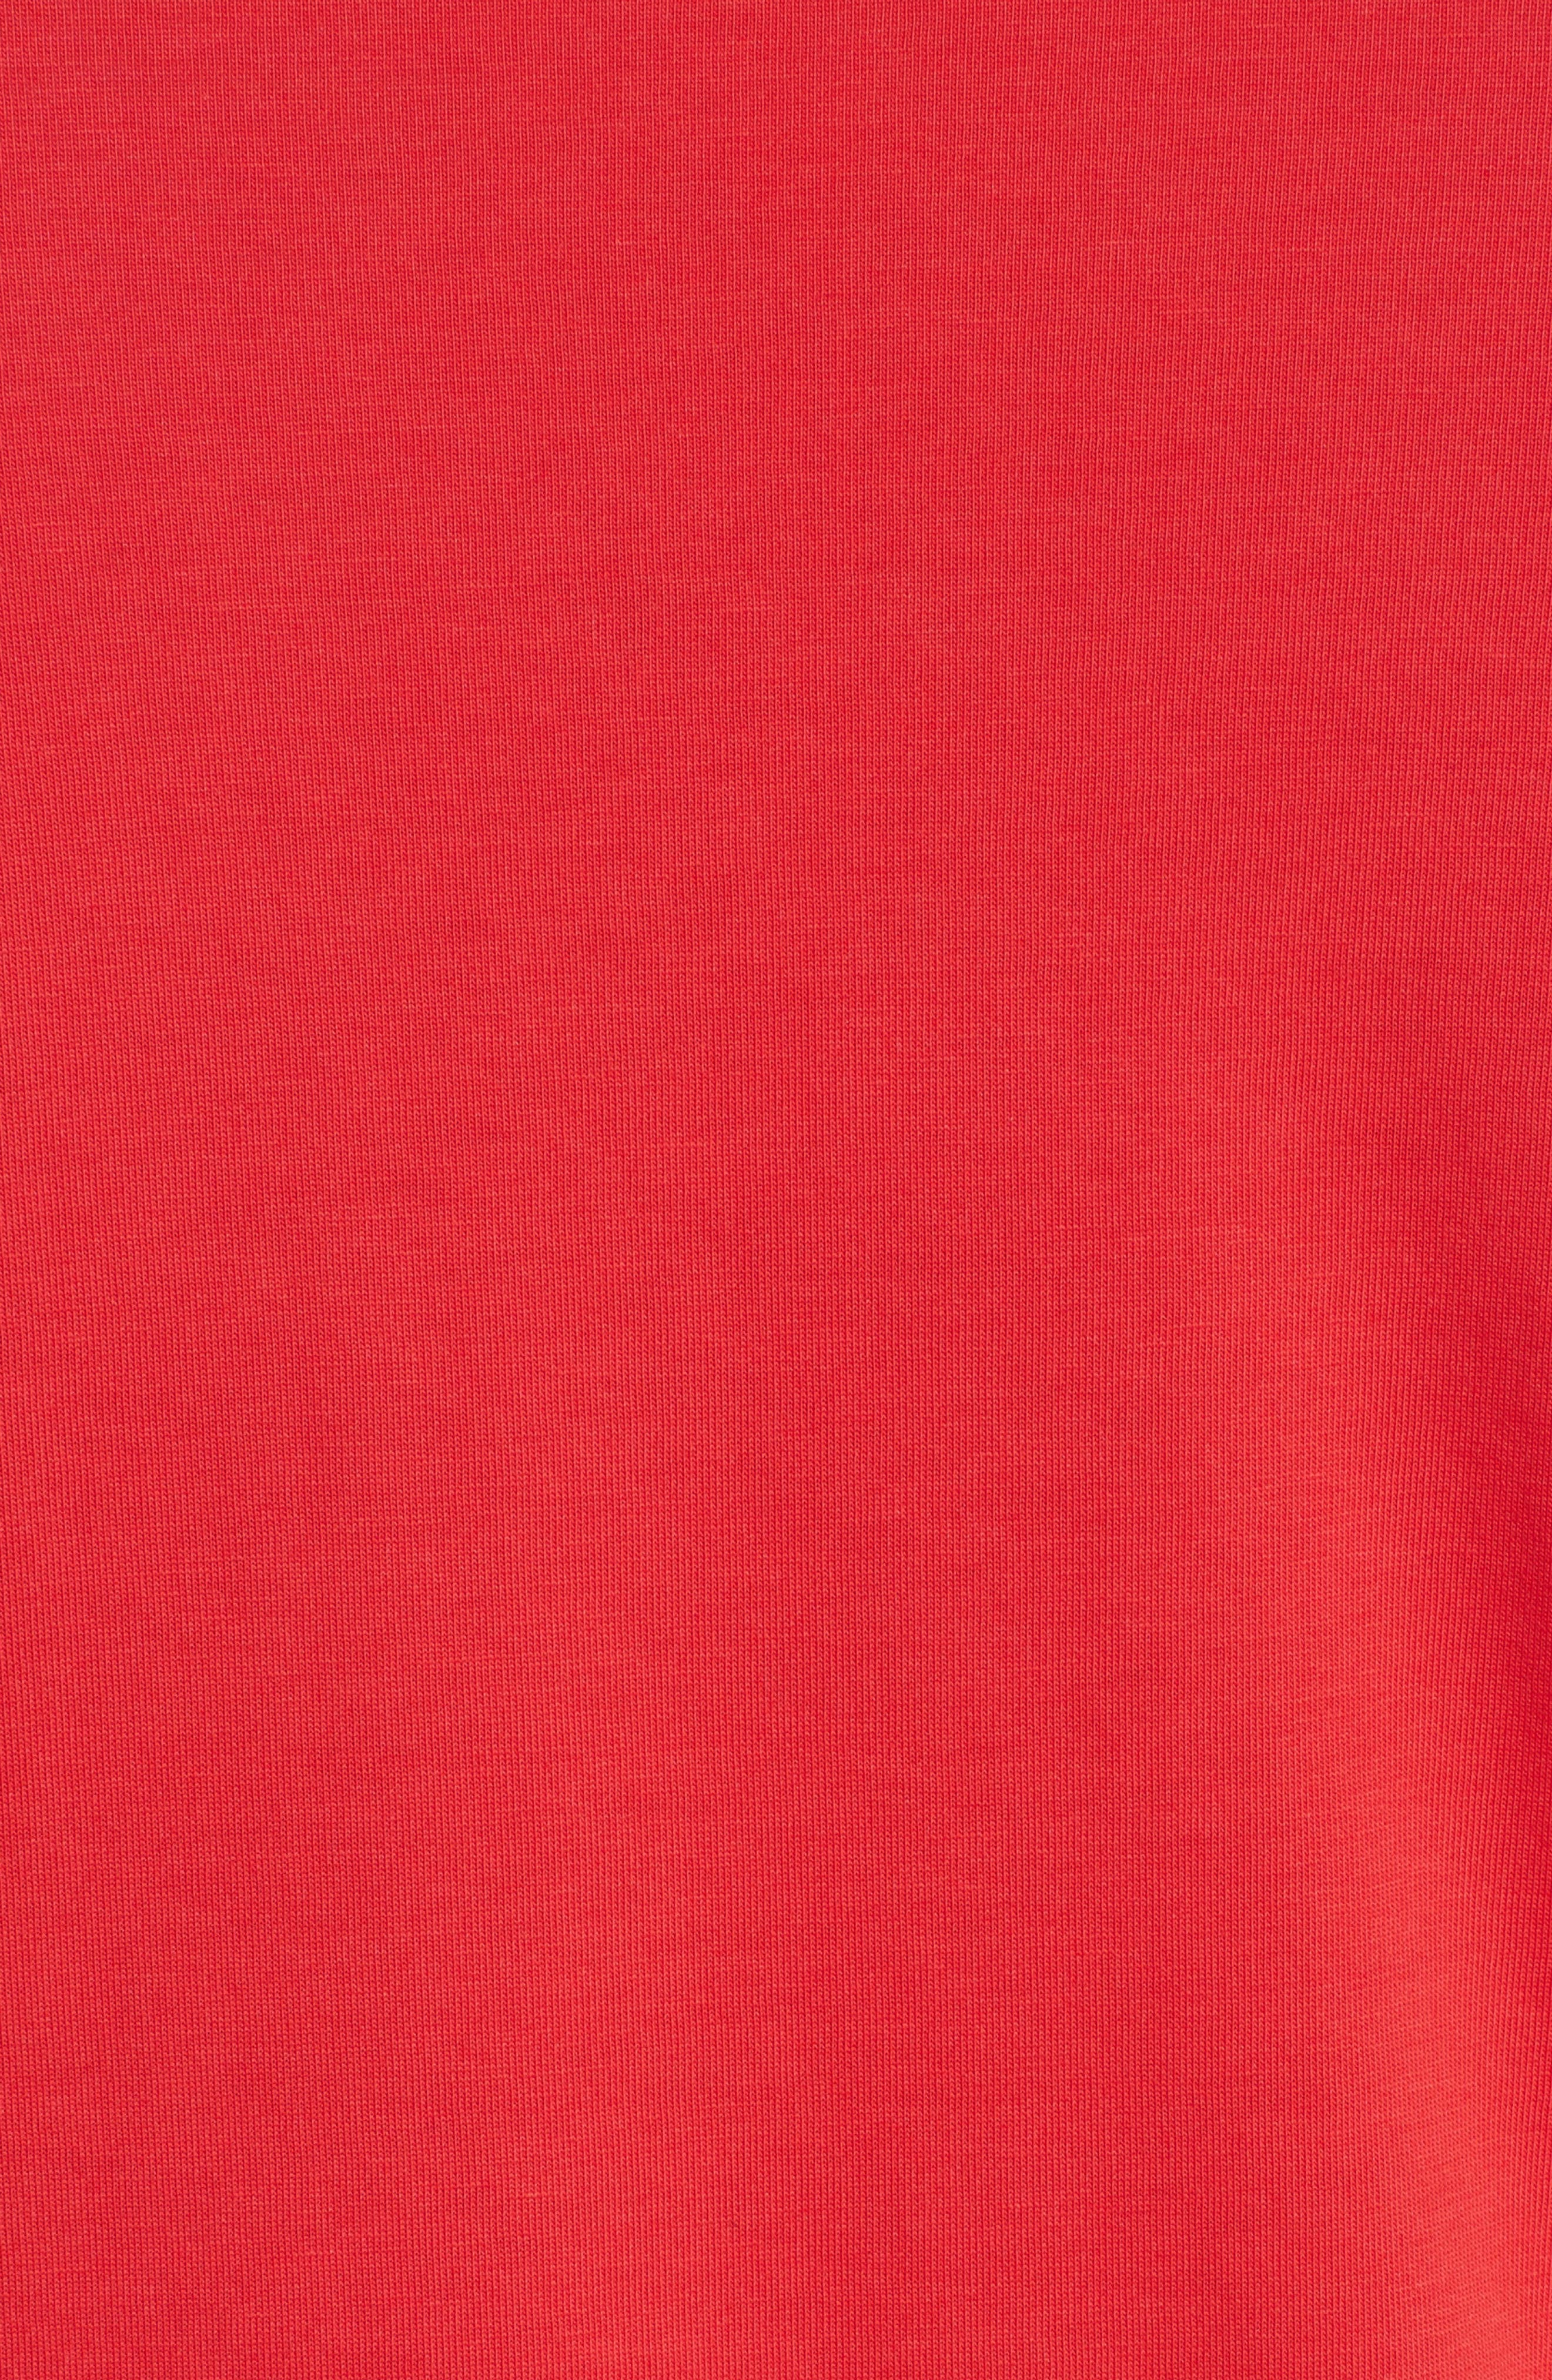 Frill Tee,                             Alternate thumbnail 3, color,                             Red